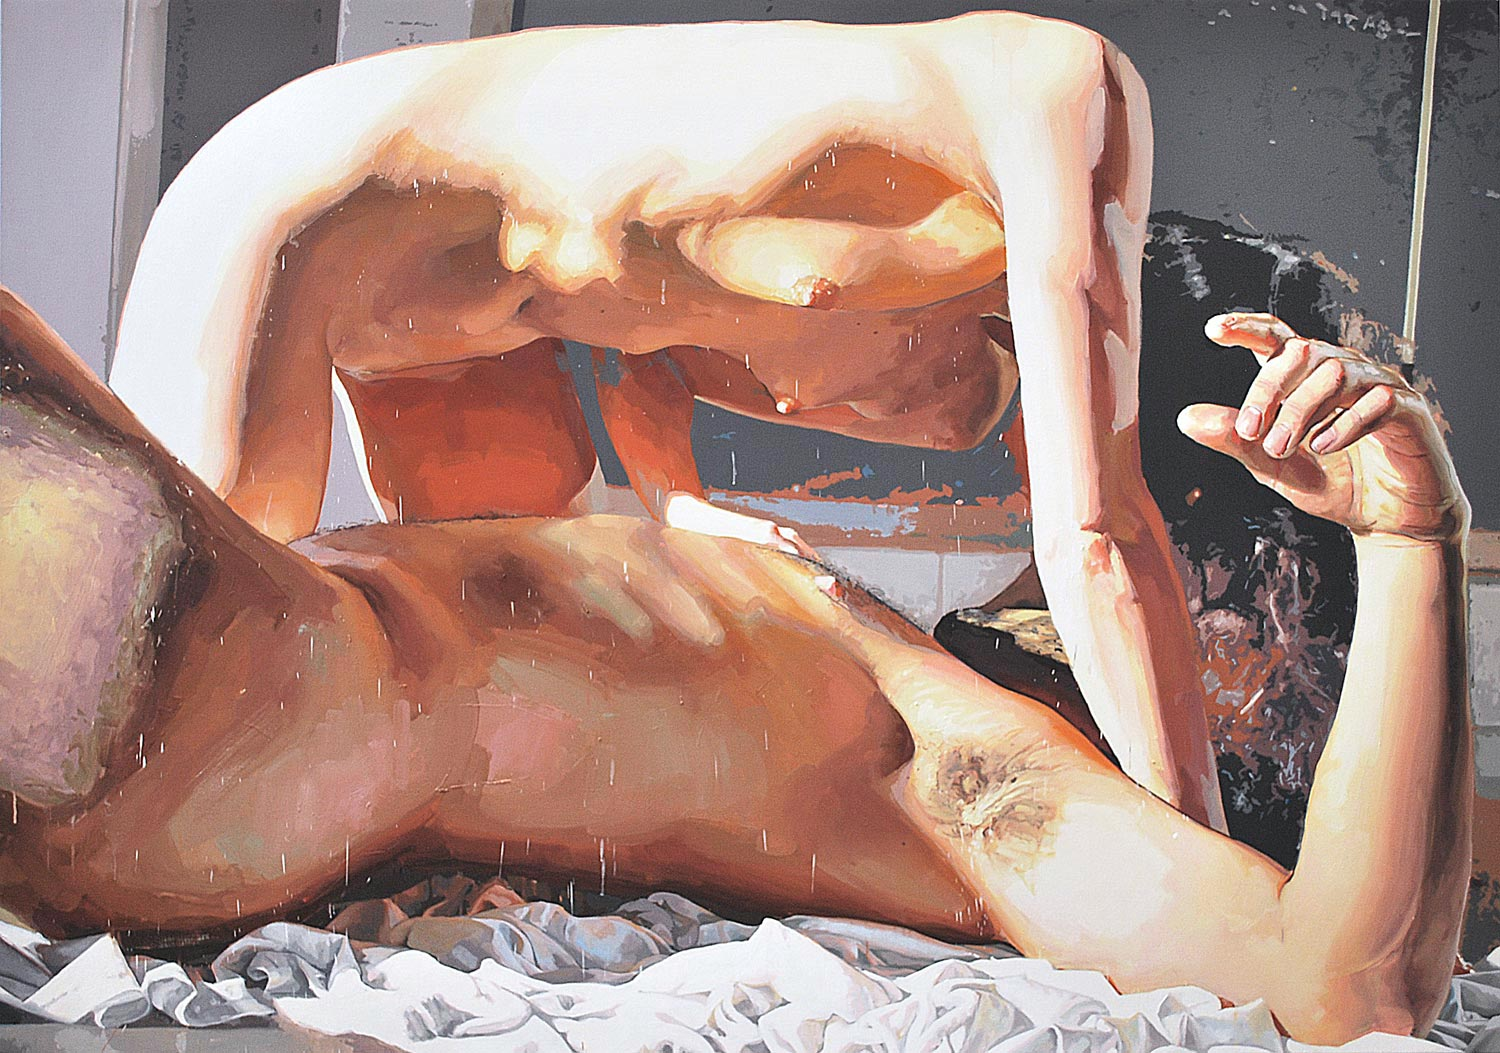 ICARUS II, 2013, oil on linen, 56 x 80 inches (147.32 x 203.2 cm).